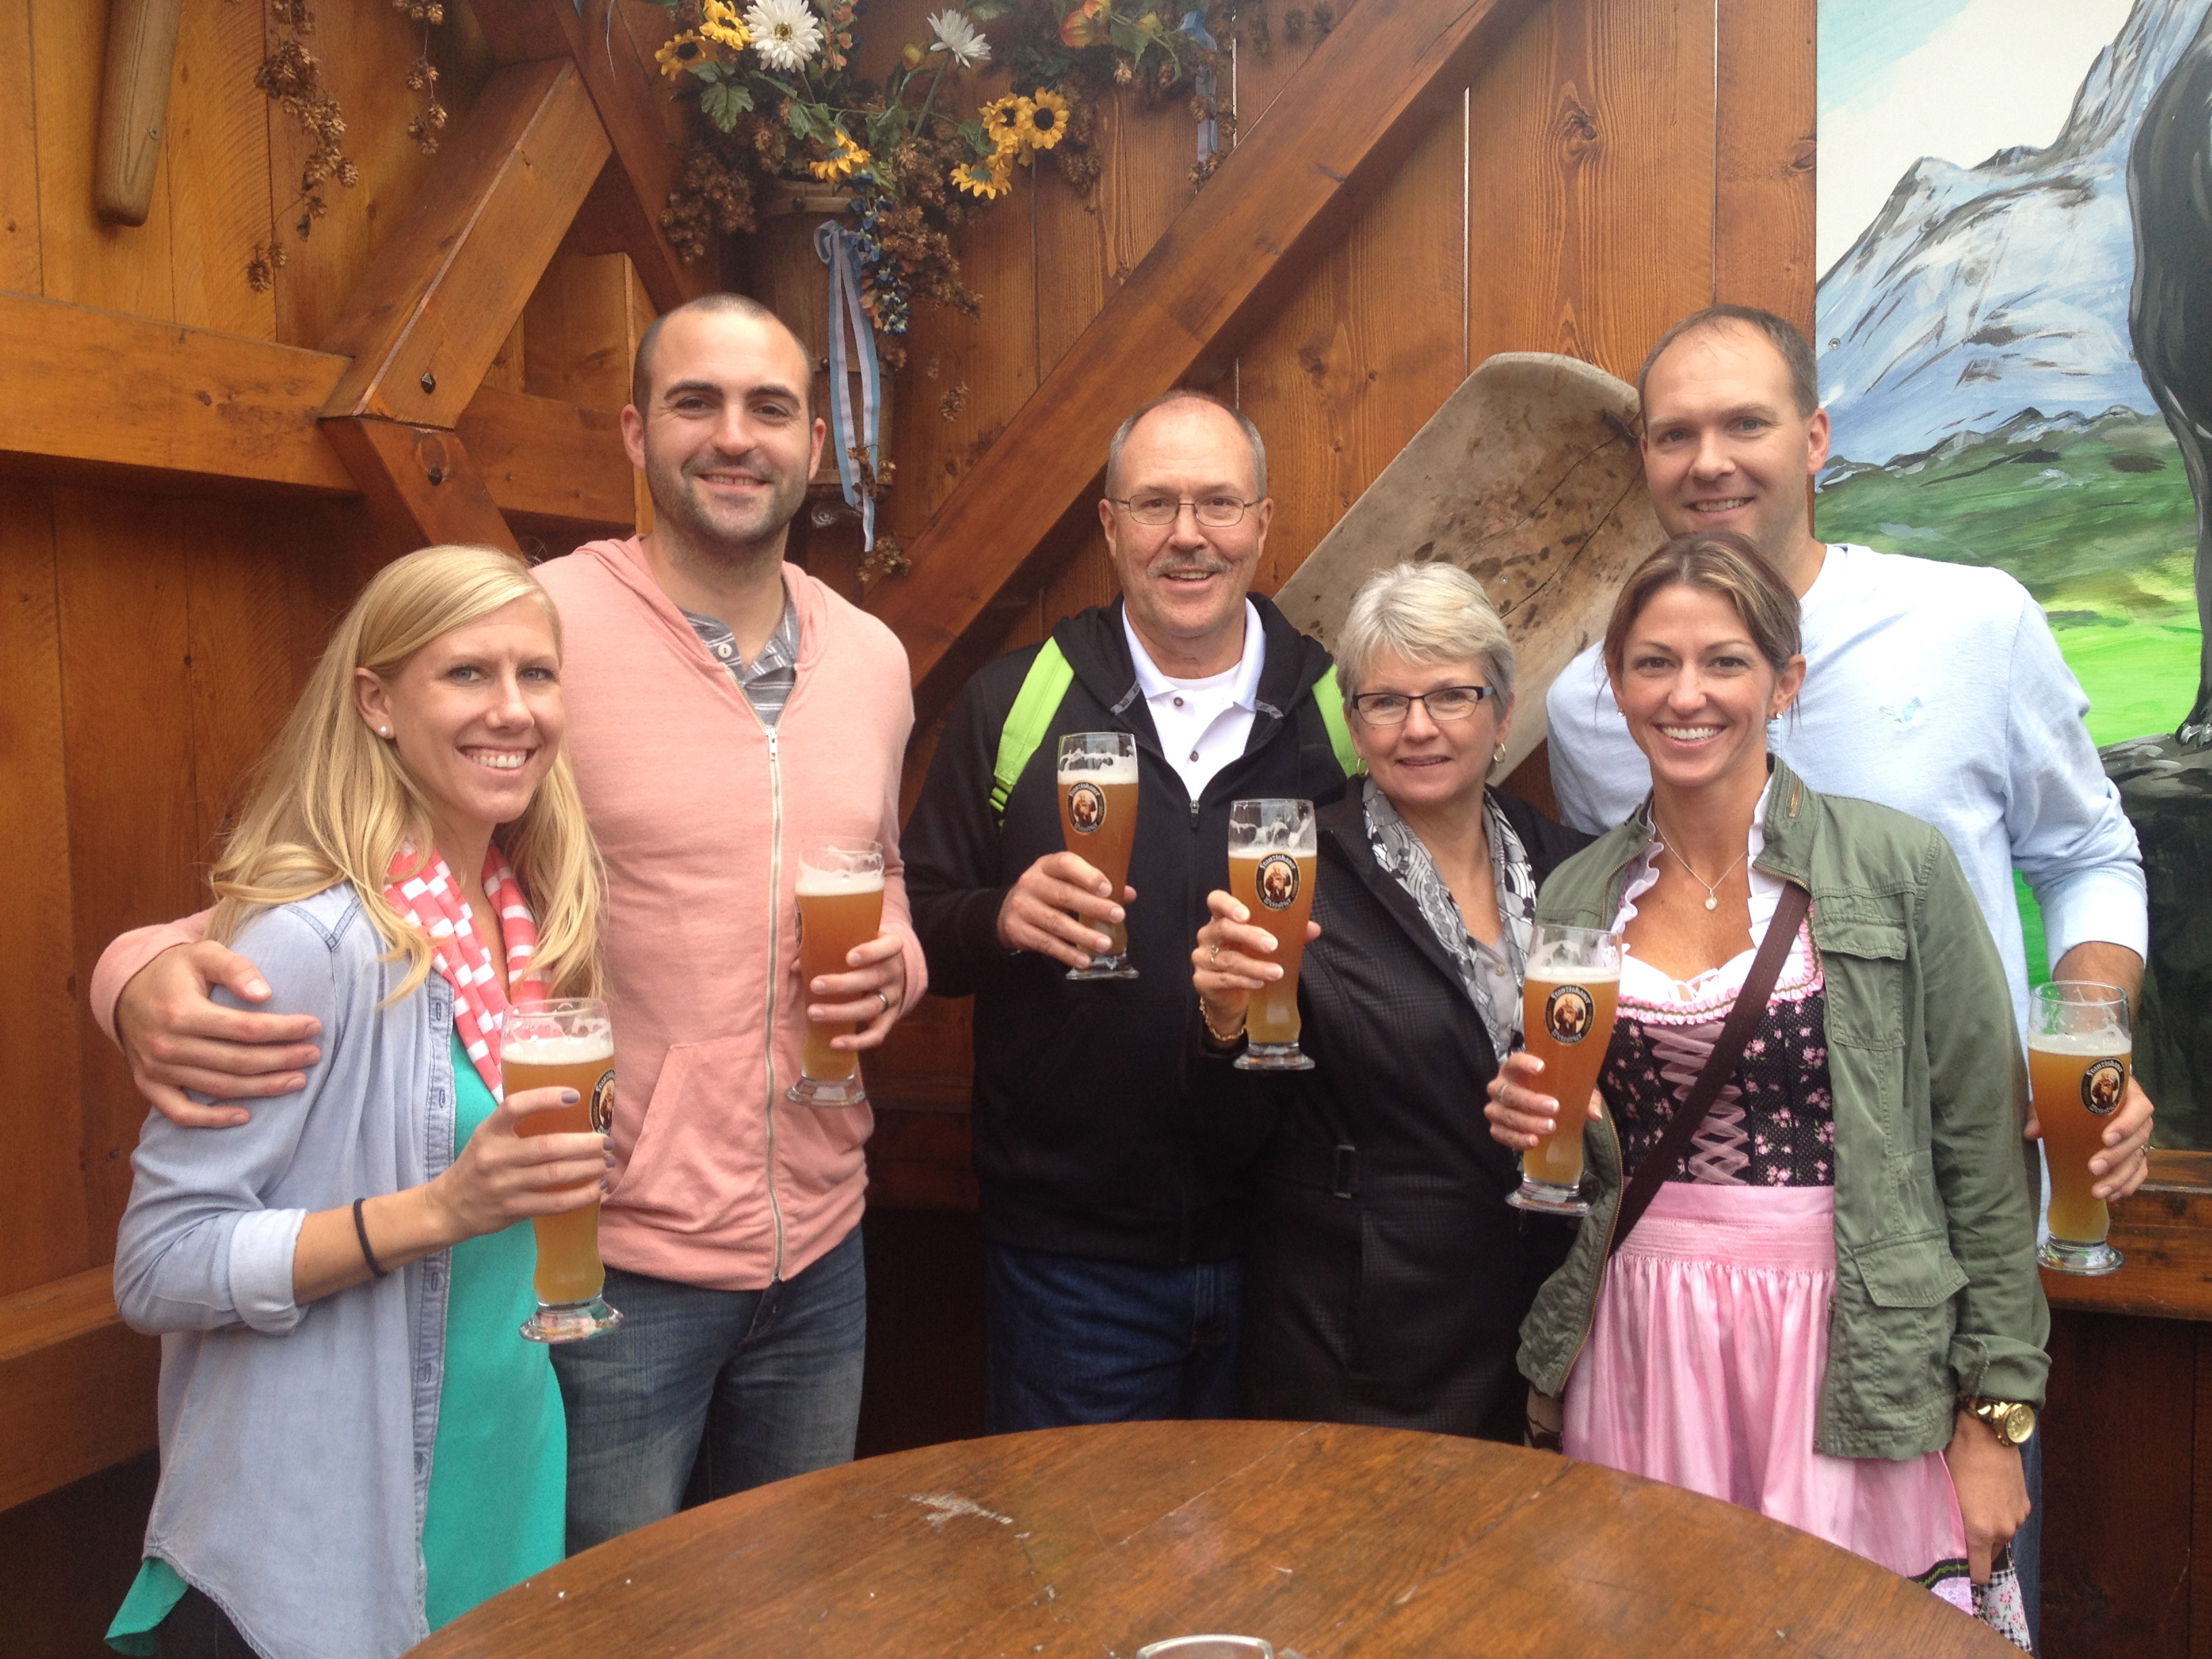 Our first Oktoberfest beers